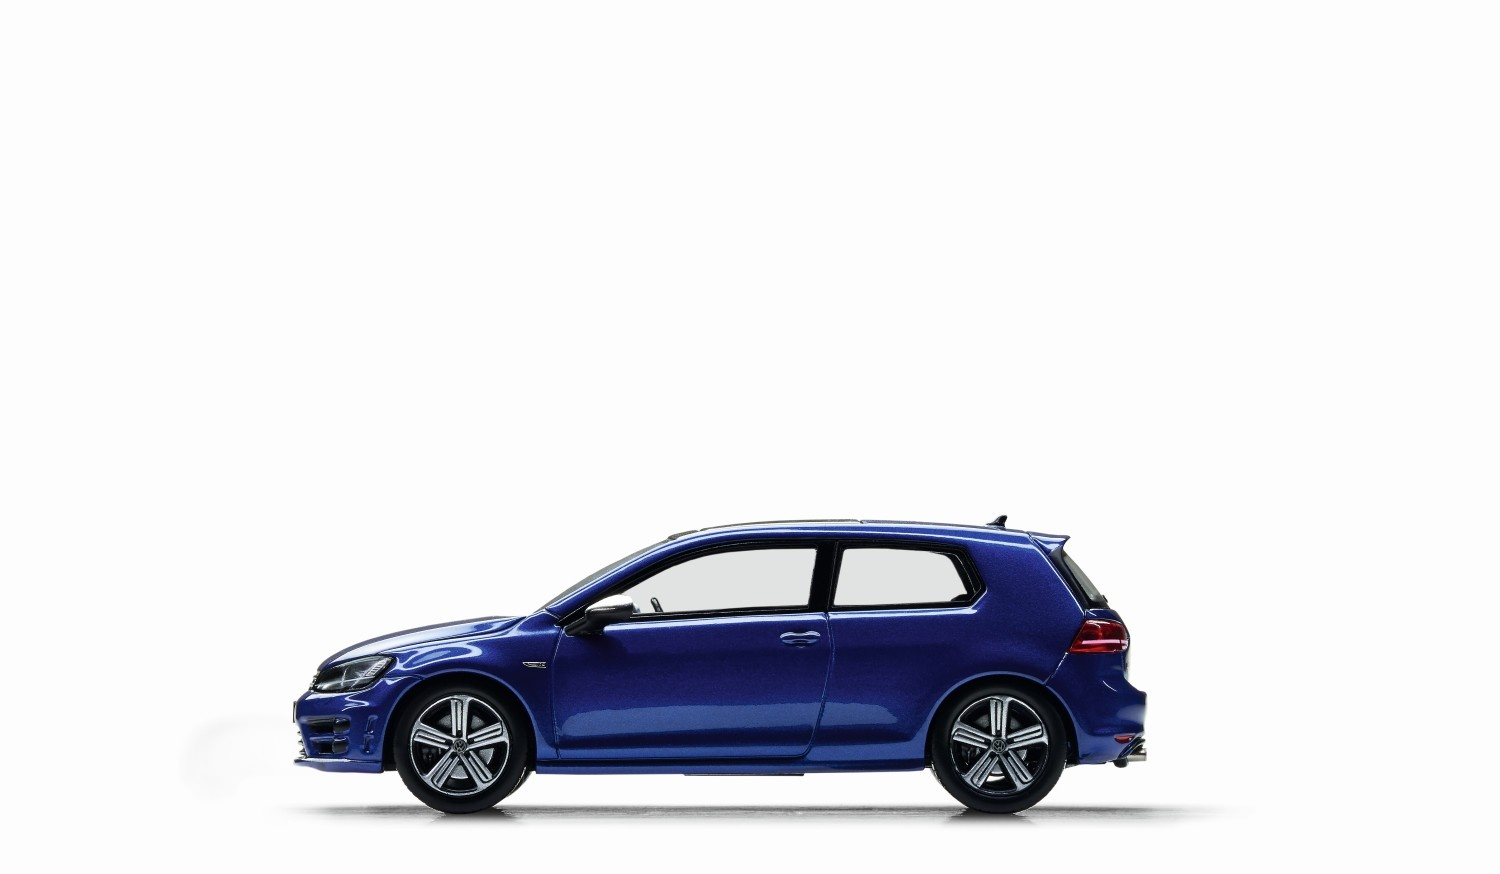 Golf VII R, escala 1:43 - Ítem1